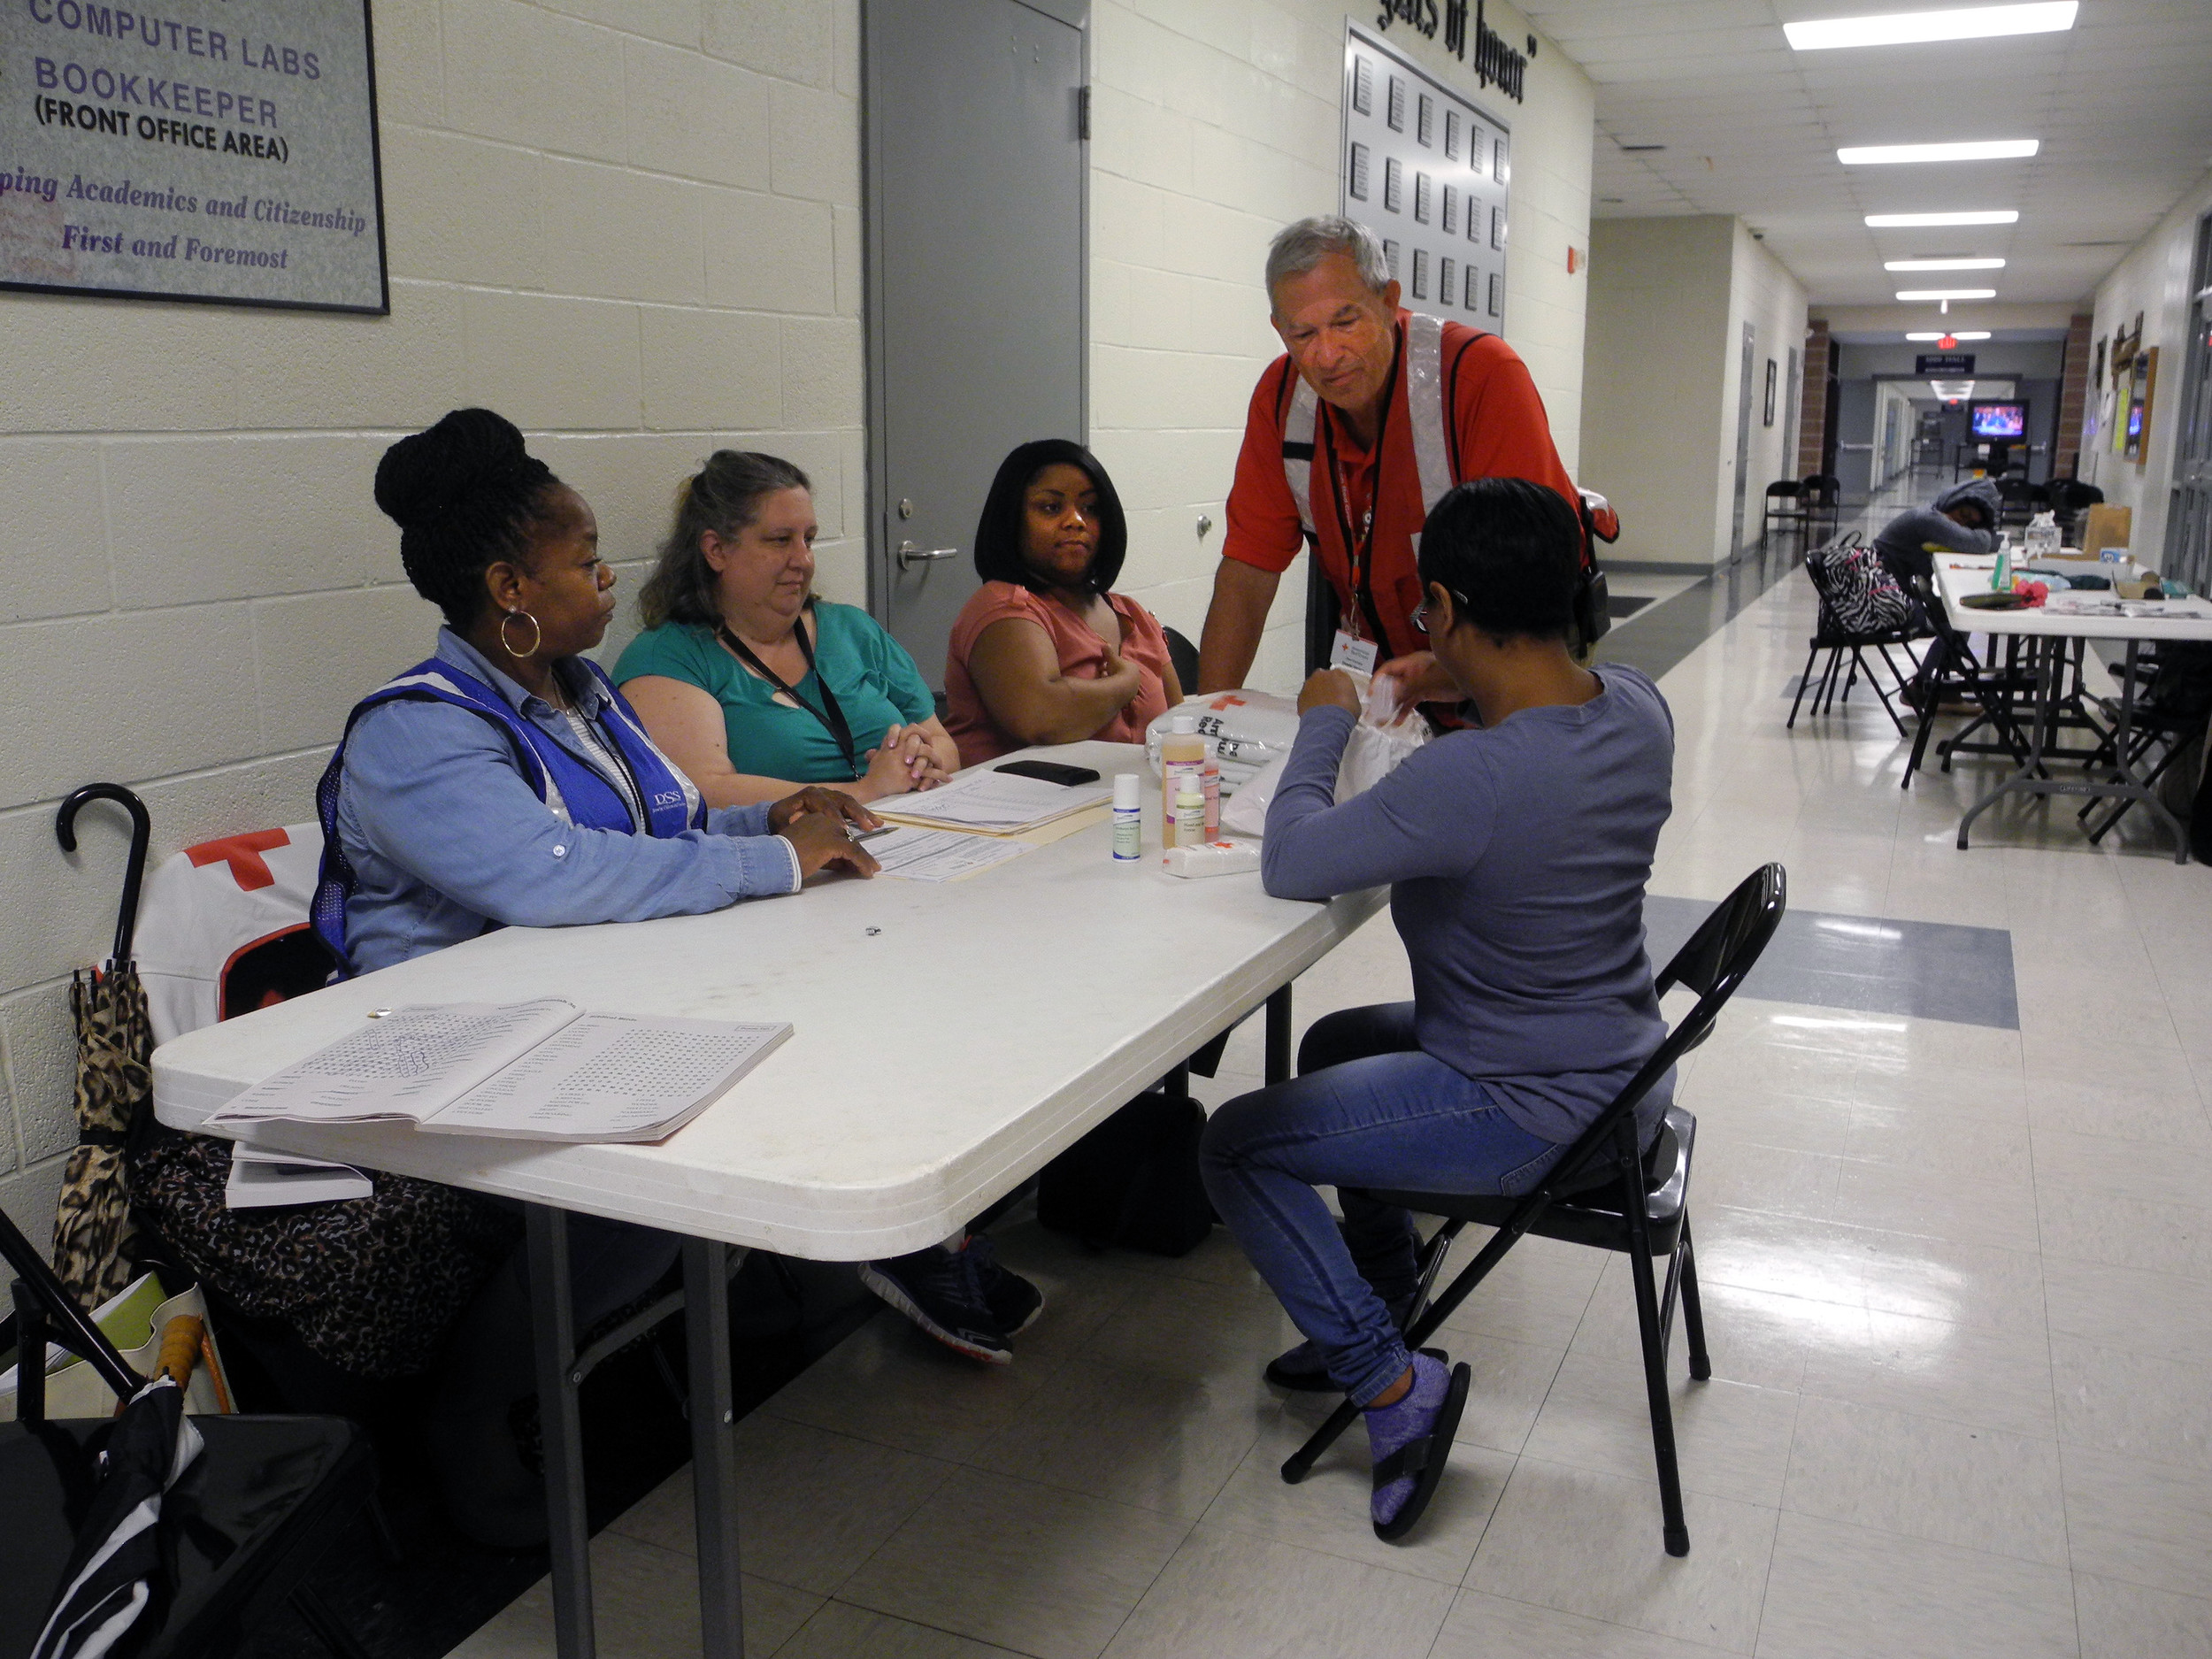 Sumter County Department of Social Services staff registered evacuees coming in to the Red Cross Shelter at Crestwood High School on Sunday night and Monday. Here a new arrival looks through the bag of toiletries provided by the Red Cross and presented to her by the shelter manager, Steve Shumake, standing. From left, the DSS staff are Janice Portee, Kristie Leahey and Shatola Allen.